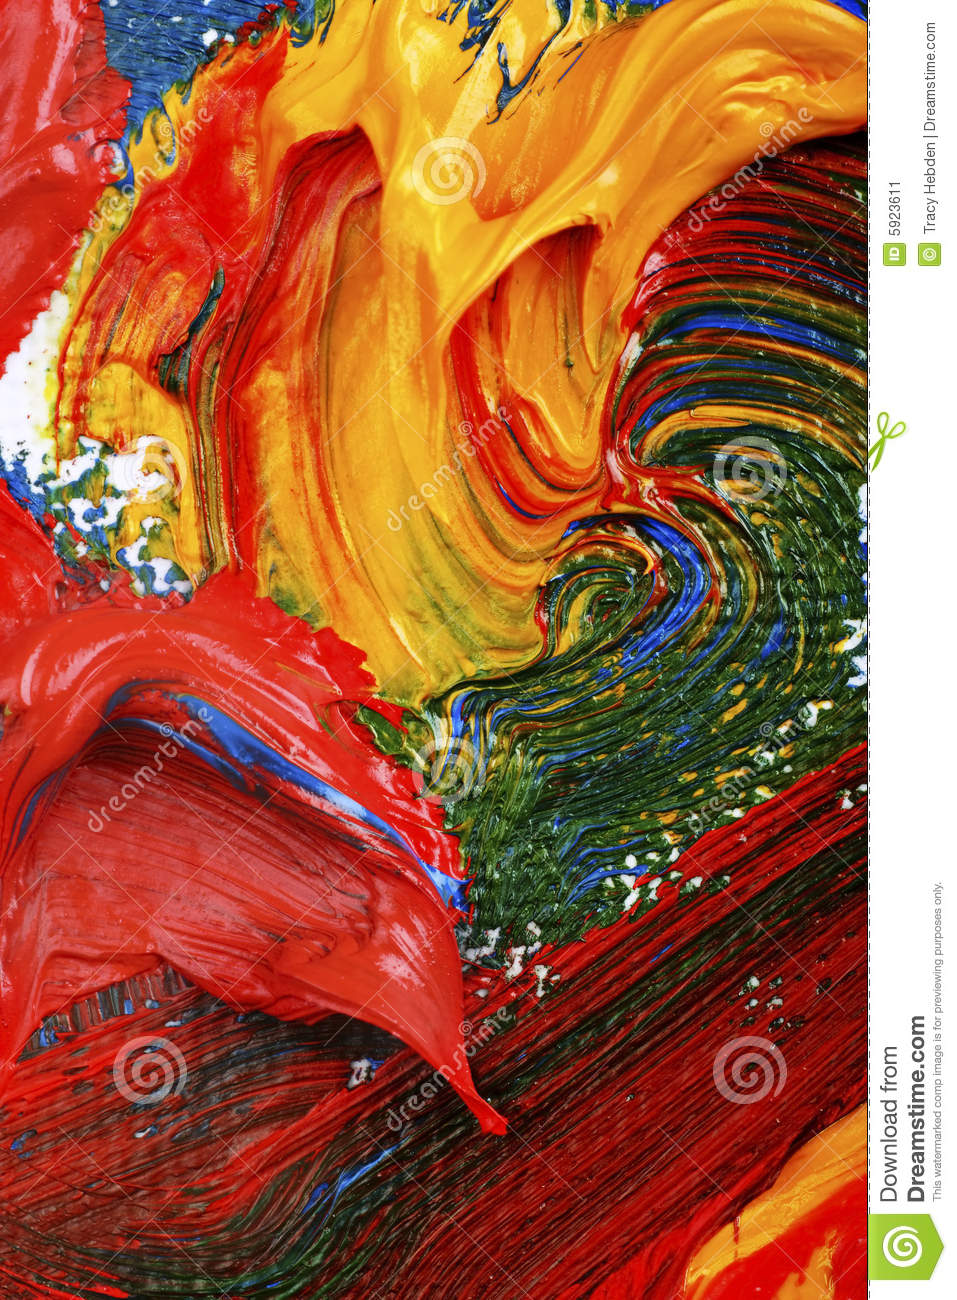 Artists Abstract Oil Painting Stock Image - Image: 5923611